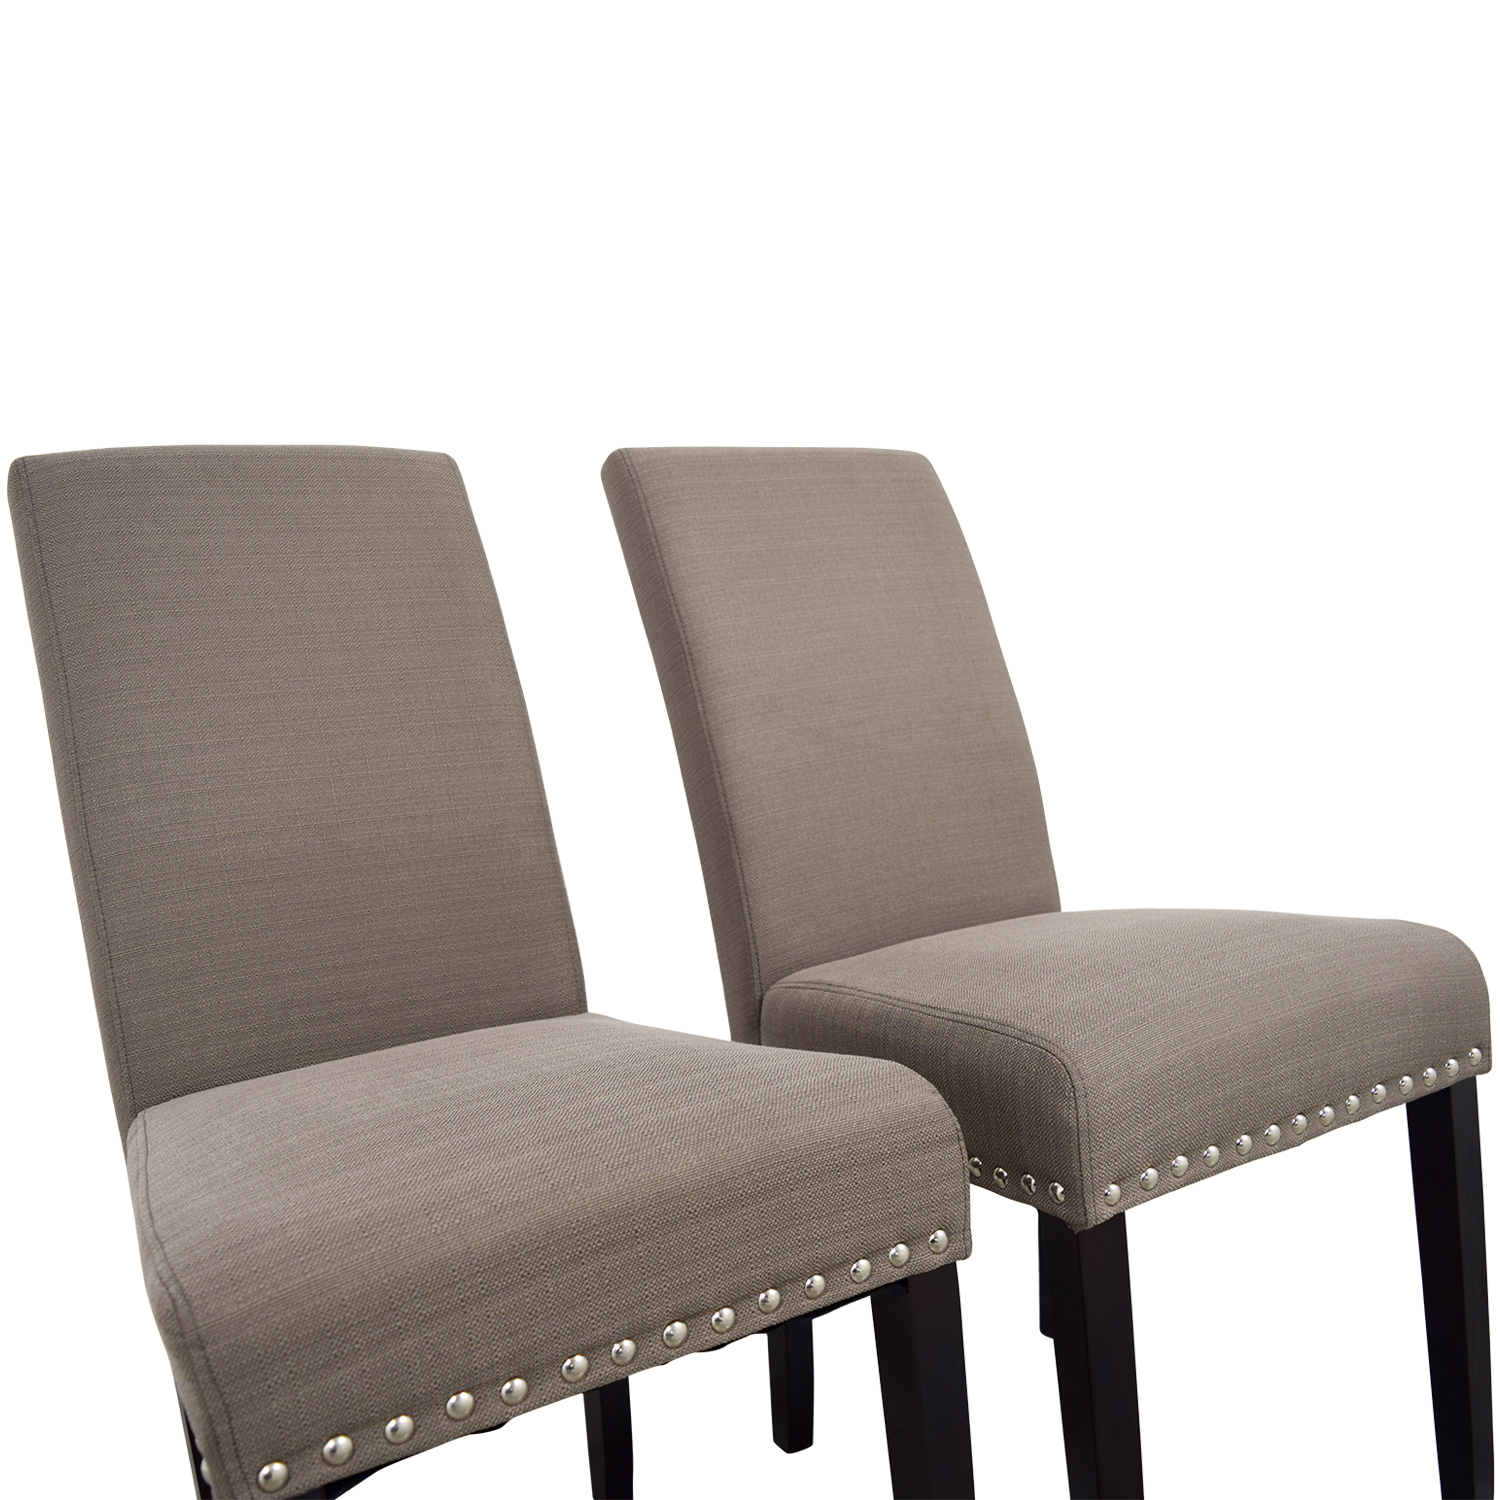 68% OFF - Modway Modway Madrid Nail Head Dining Chairs / Chairs